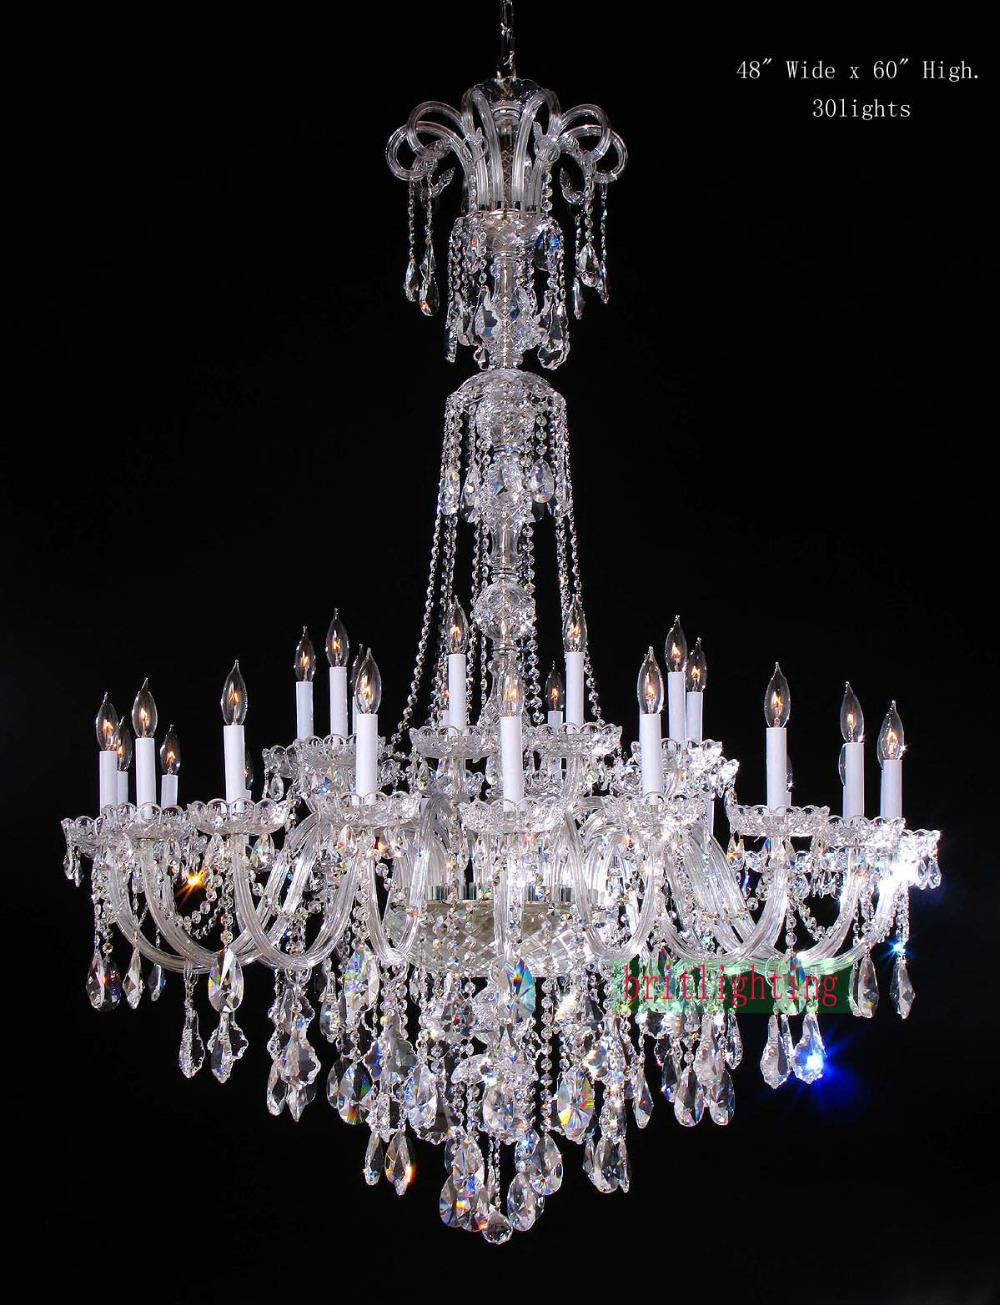 Lamp Modern Crystal Chandeliers Star Hotel Chandelier Led Crystal - Discount chandelier crystals